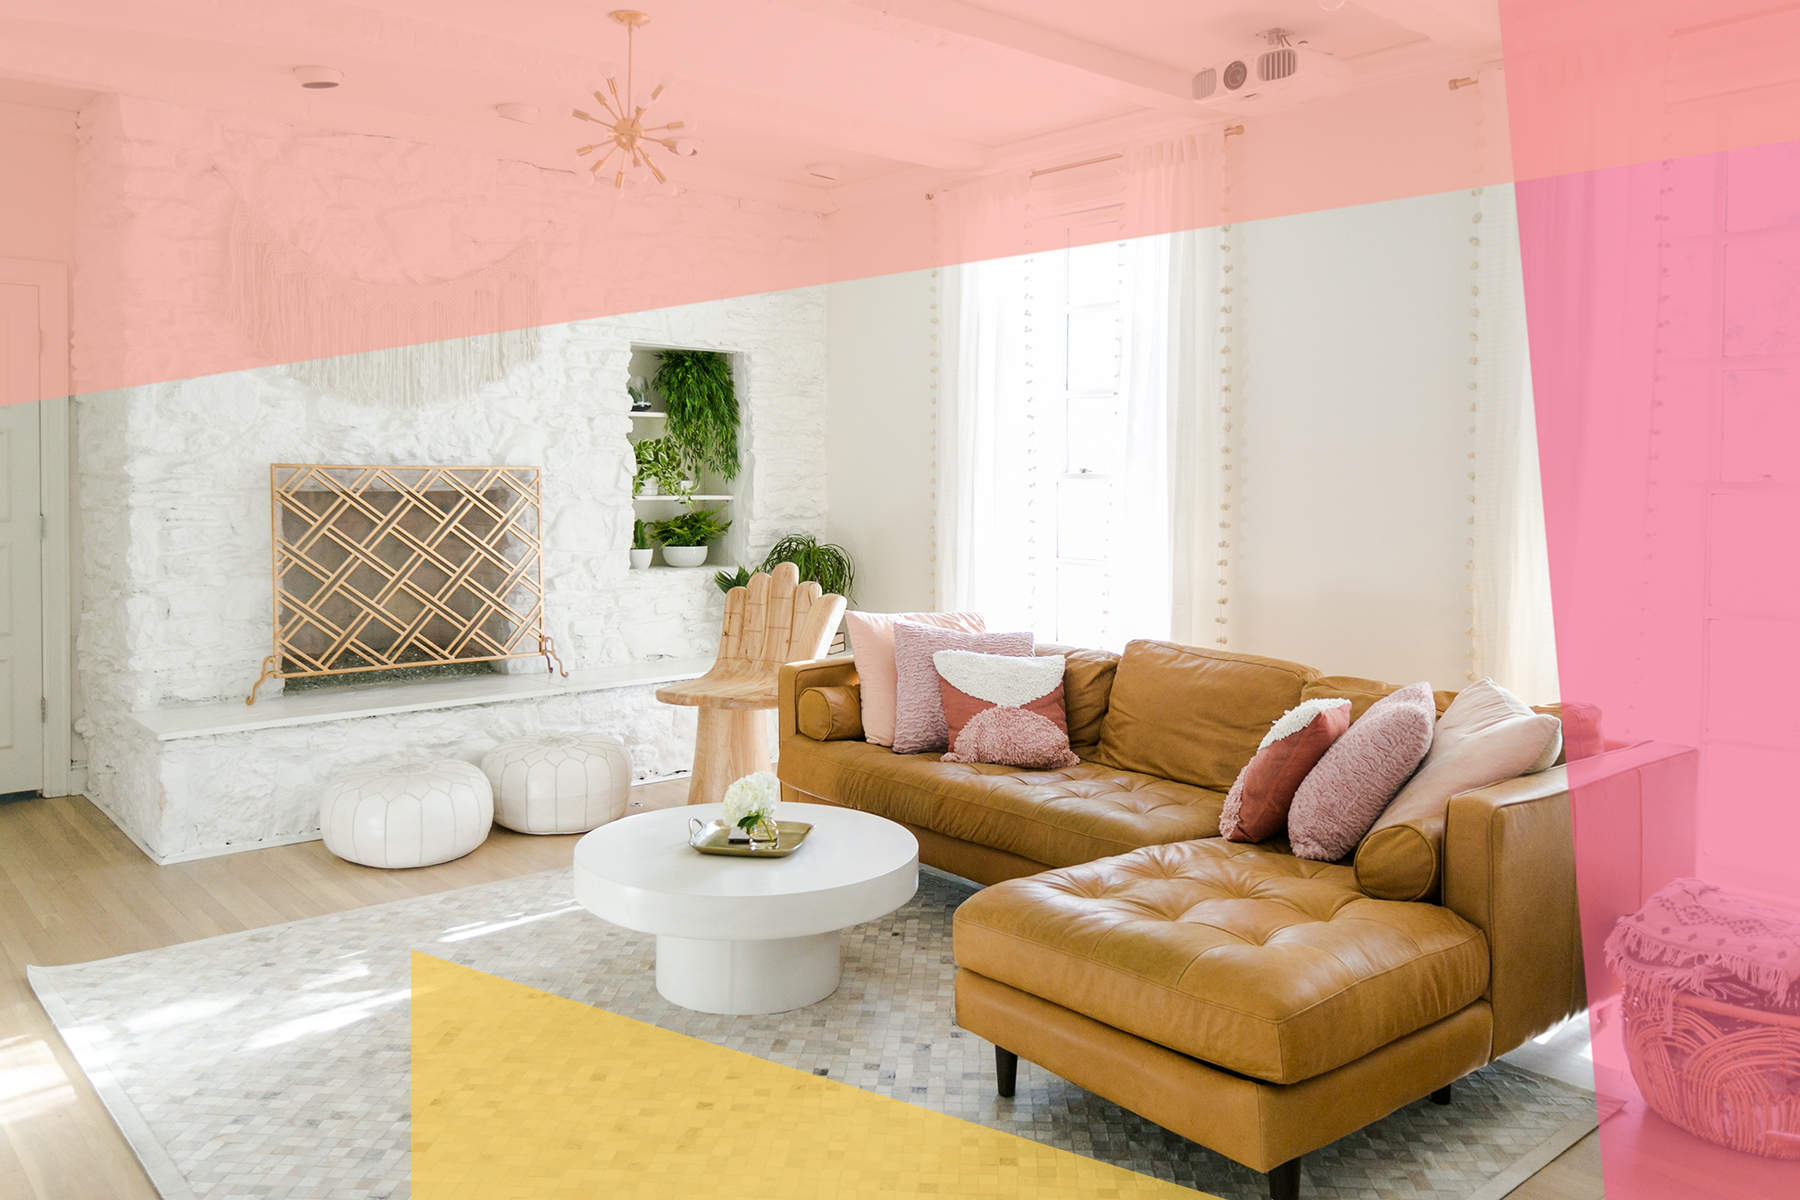 How to Renovate Your Home